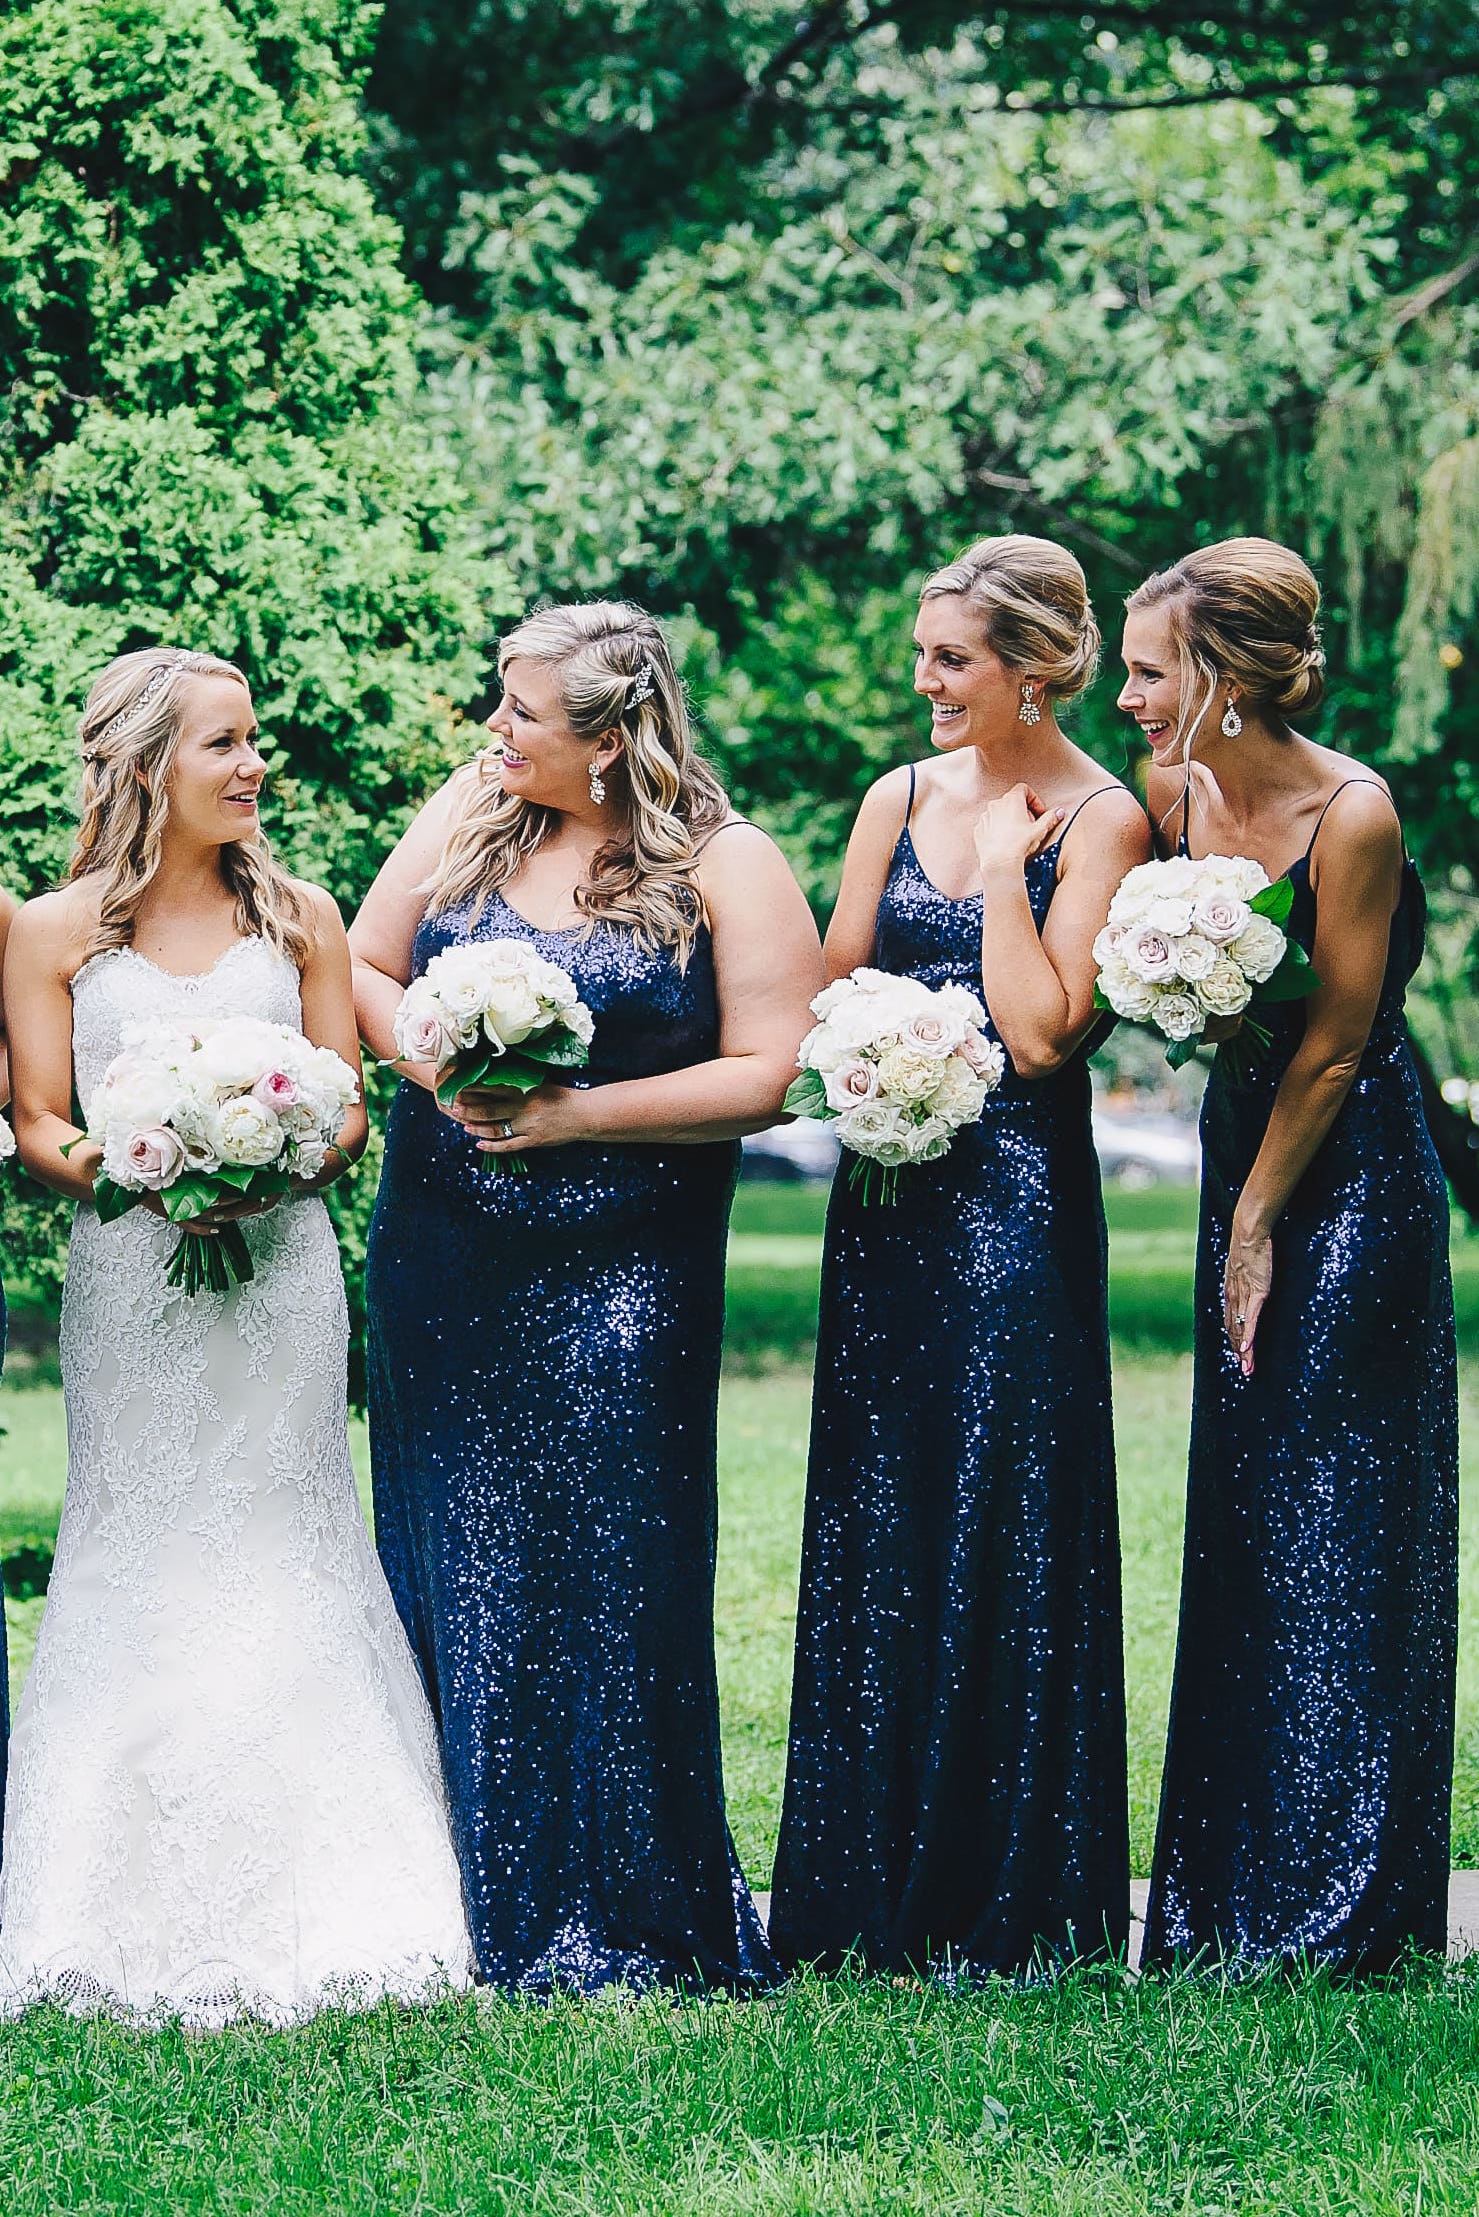 Bridesmaids in Jules style by Jenny Yoo in navy sequin